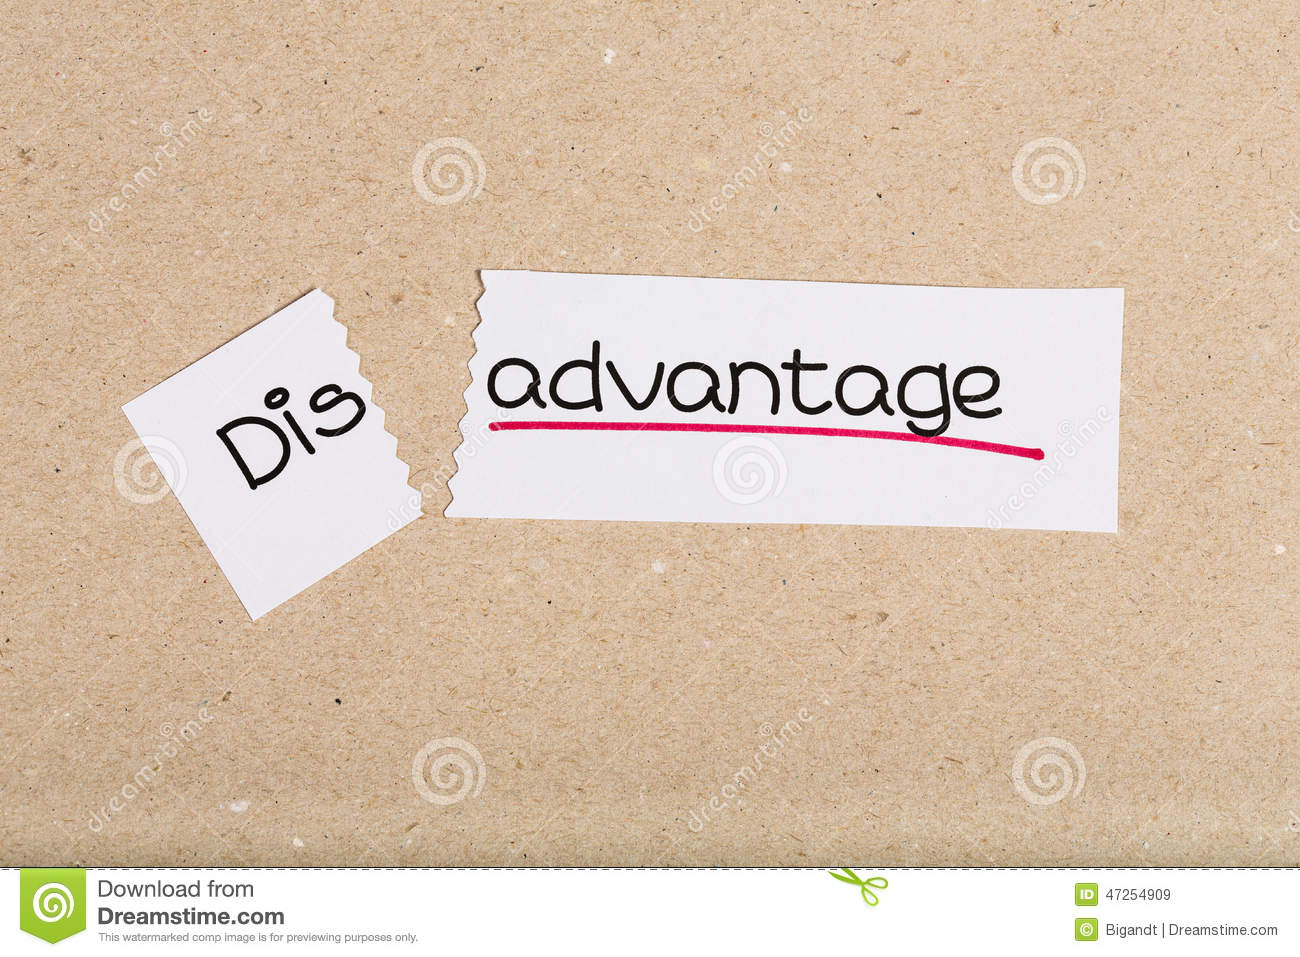 the ectd advantage white paper General overview of ectd taku watanabe ich m8 ewg rapporteur pharmaceuticals and medical devices agency ©2011 ich  less paper • results o expected advantages have been met o contribute to improvement of:-data quality-reusability-faster access-life cycle management o.